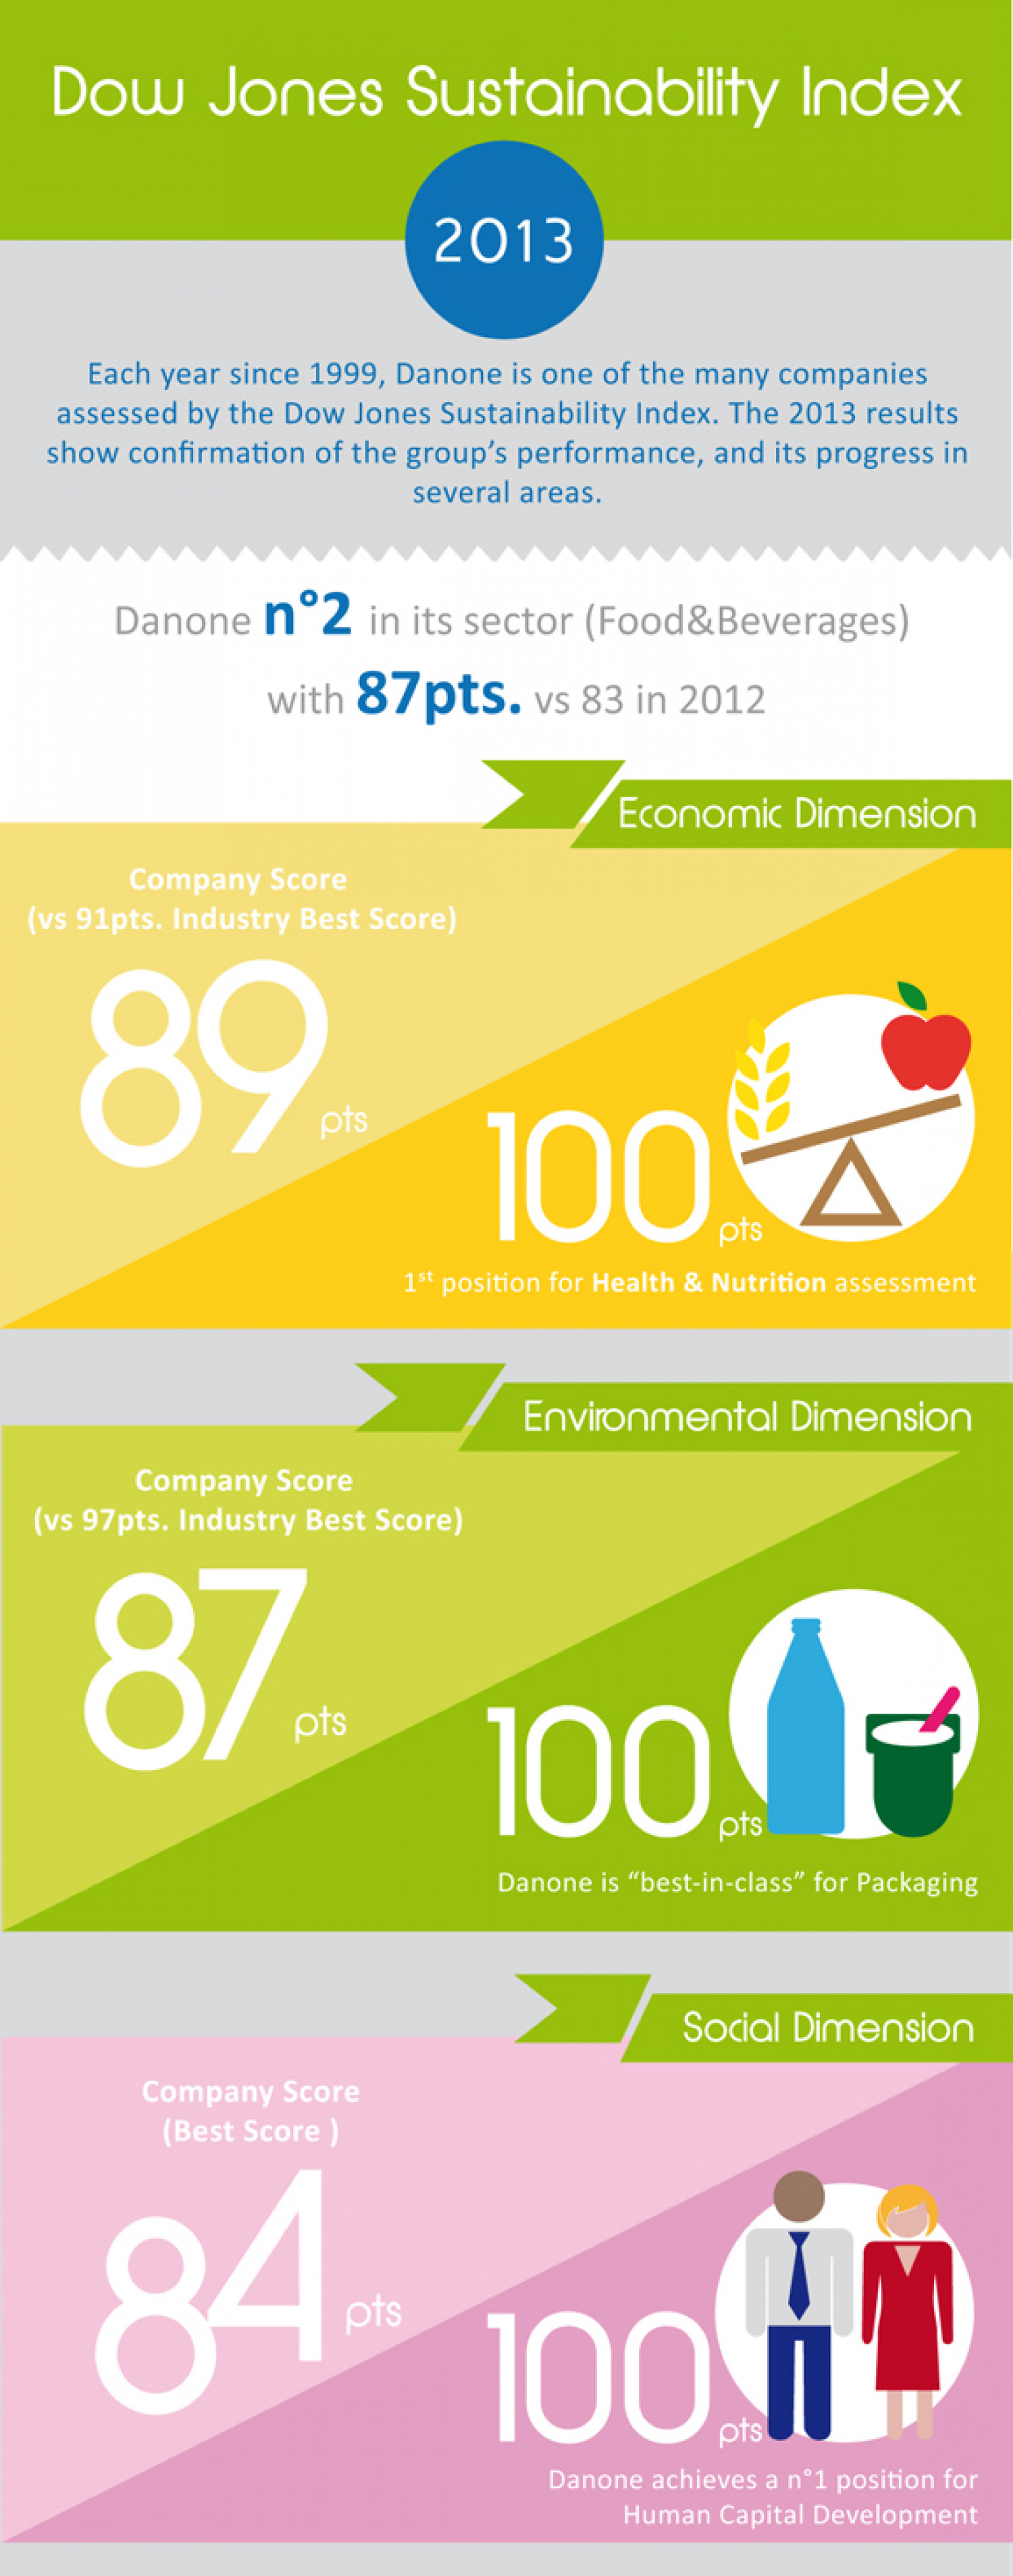 The DJSI 2013 rating shows progress for Danone Infographic